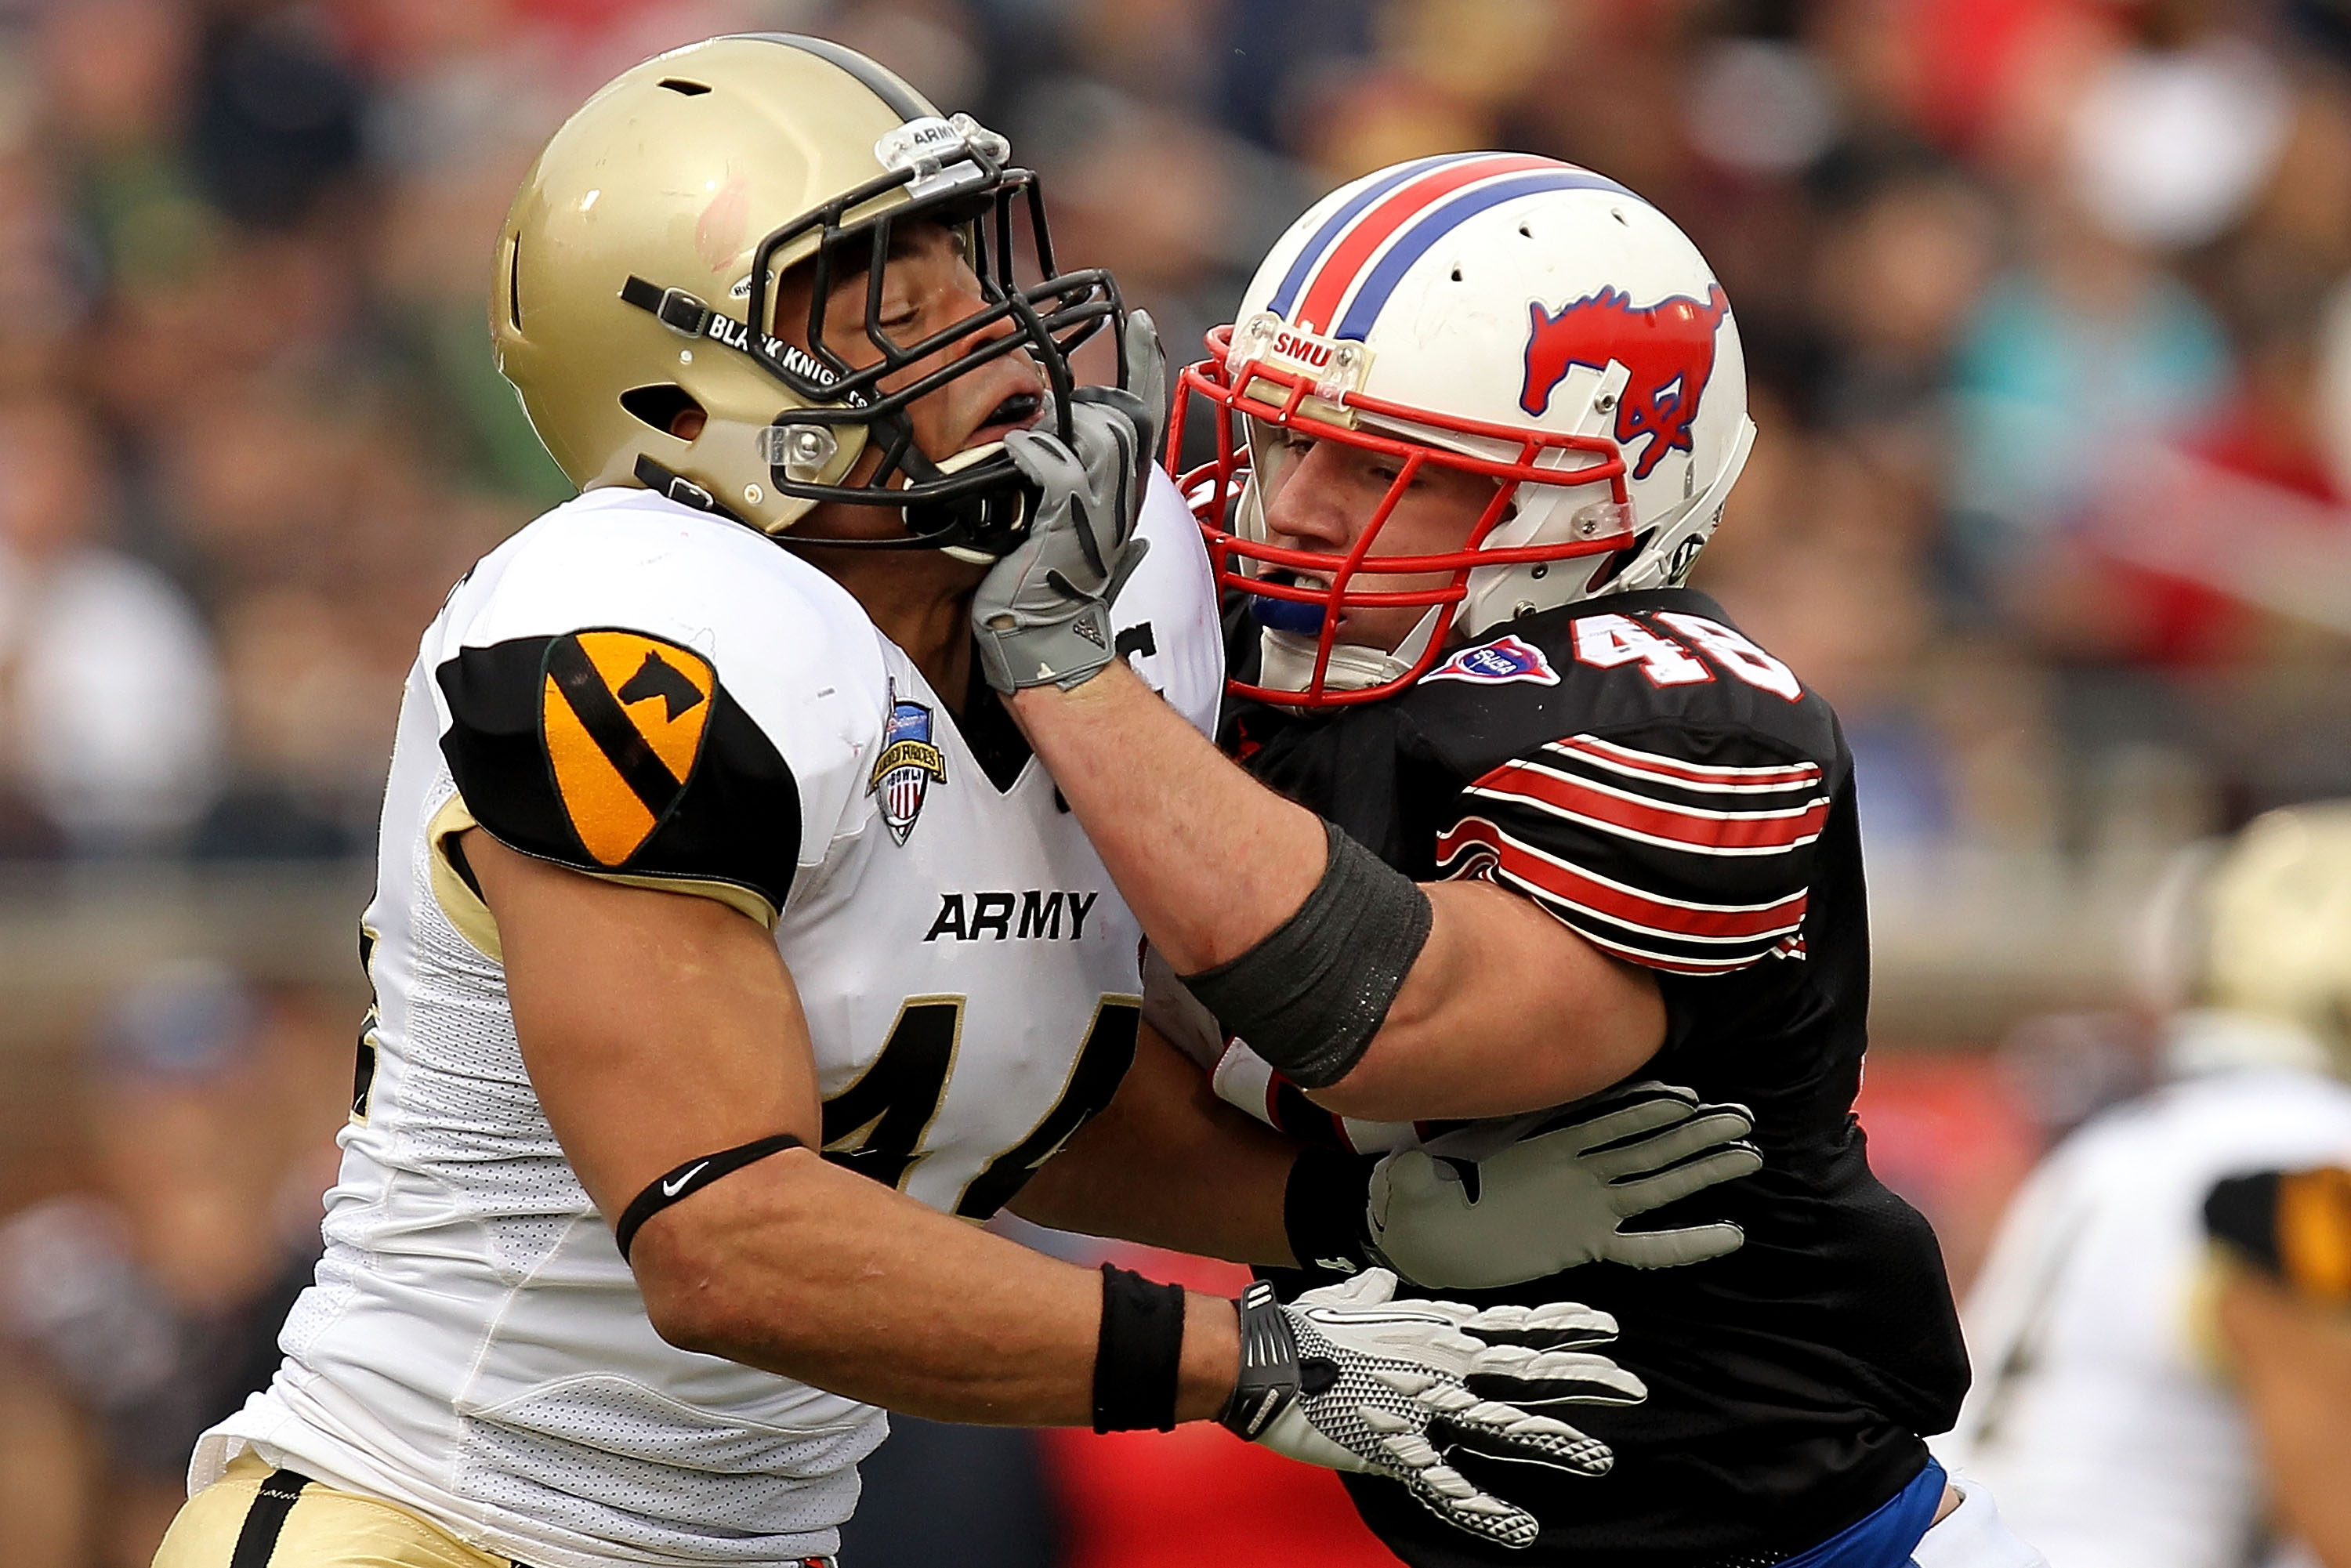 DALLAS, TX - DECEMBER 30:  Defensive end Joshua McNary #44 of the Army Black Knights defends the play against Zach Line #48 of the SMU Mustangs during the Bell Helicopter Armed Forces Bowl at Gerald J. Ford Stadium on December 30, 2010 in Dallas, Texas.